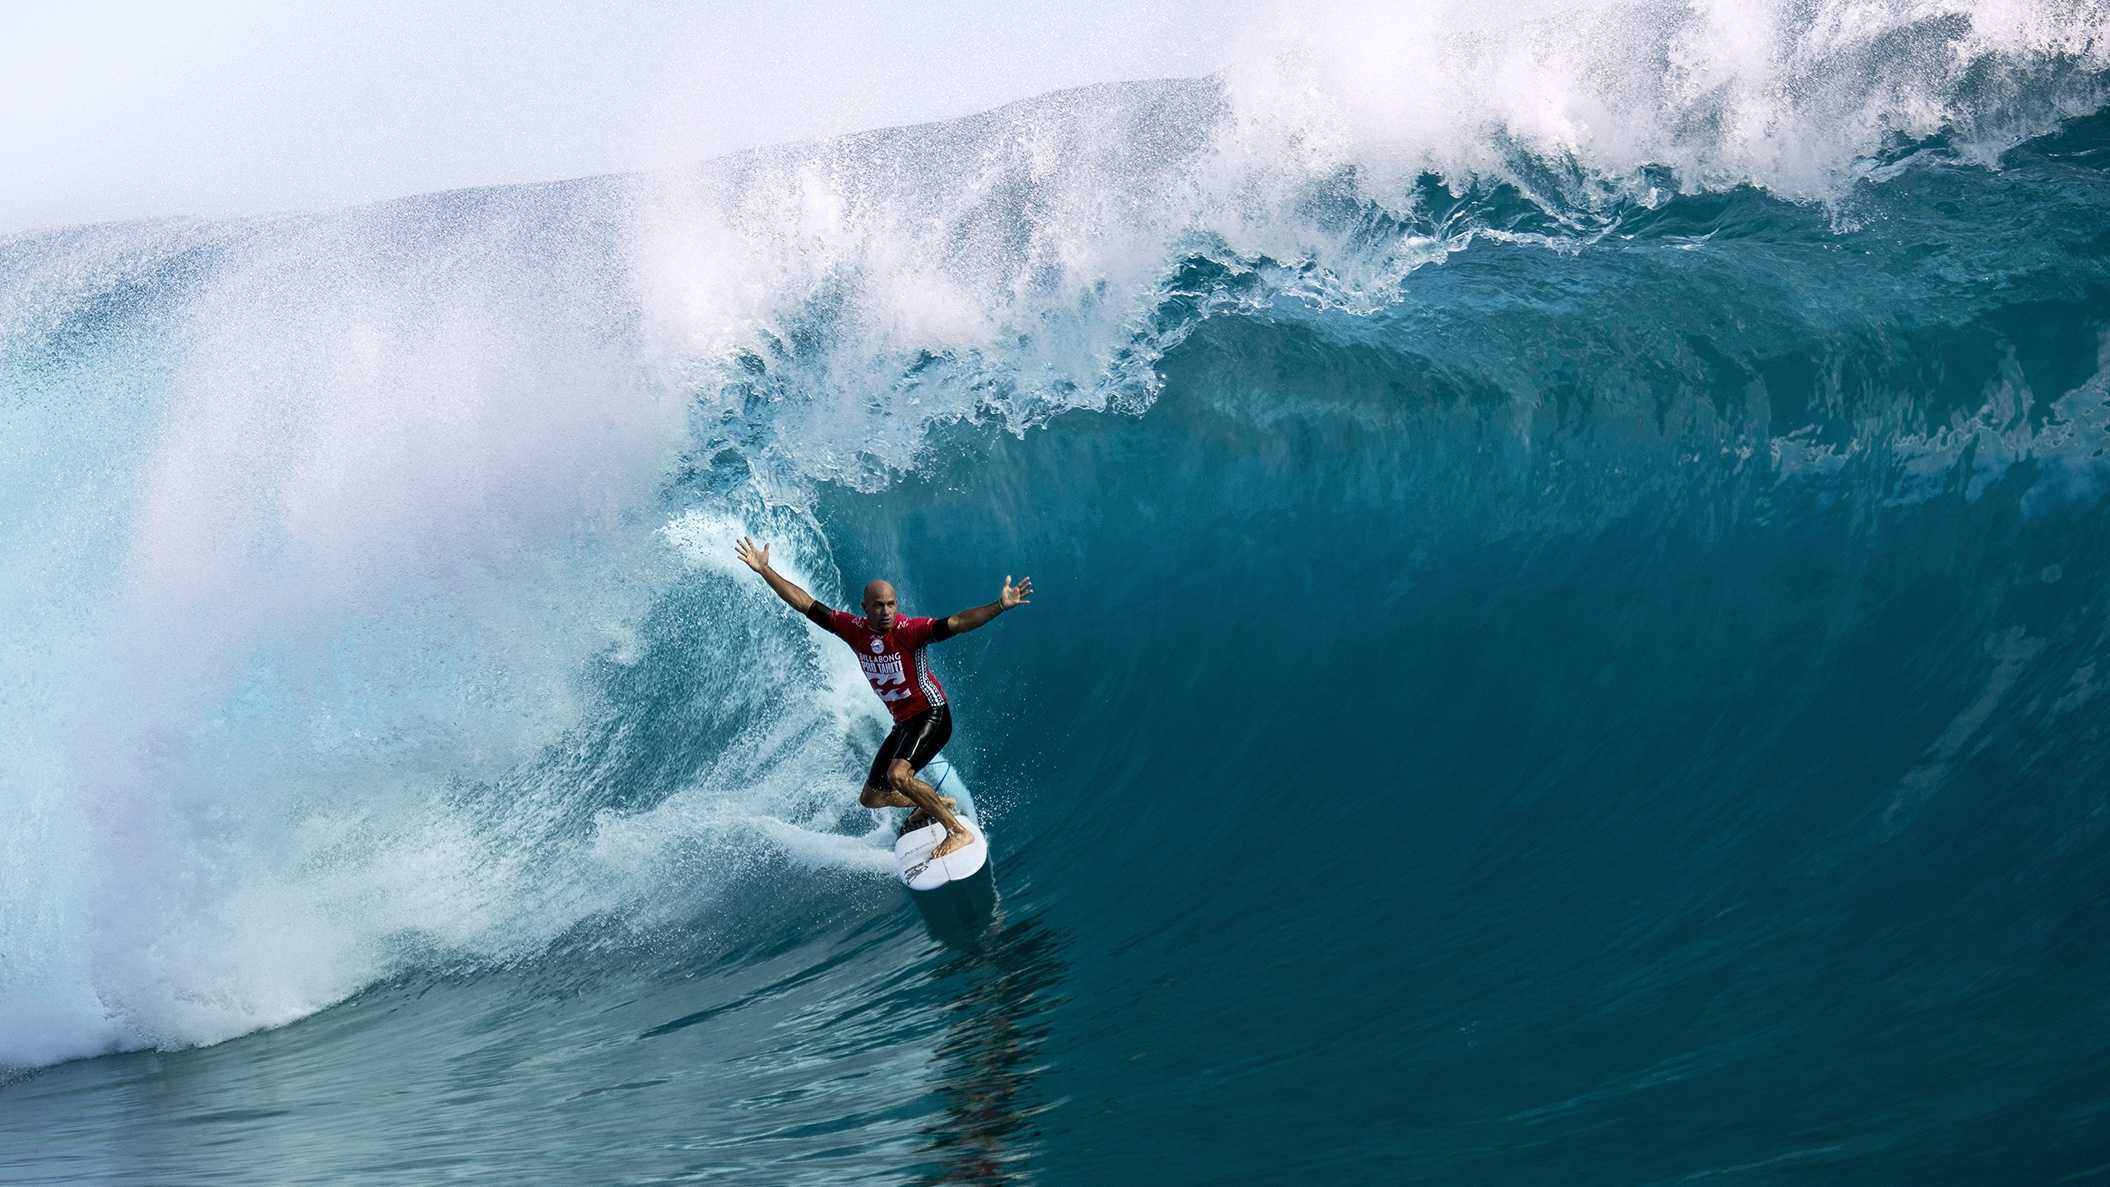 Kelly Slater - World champion surfer